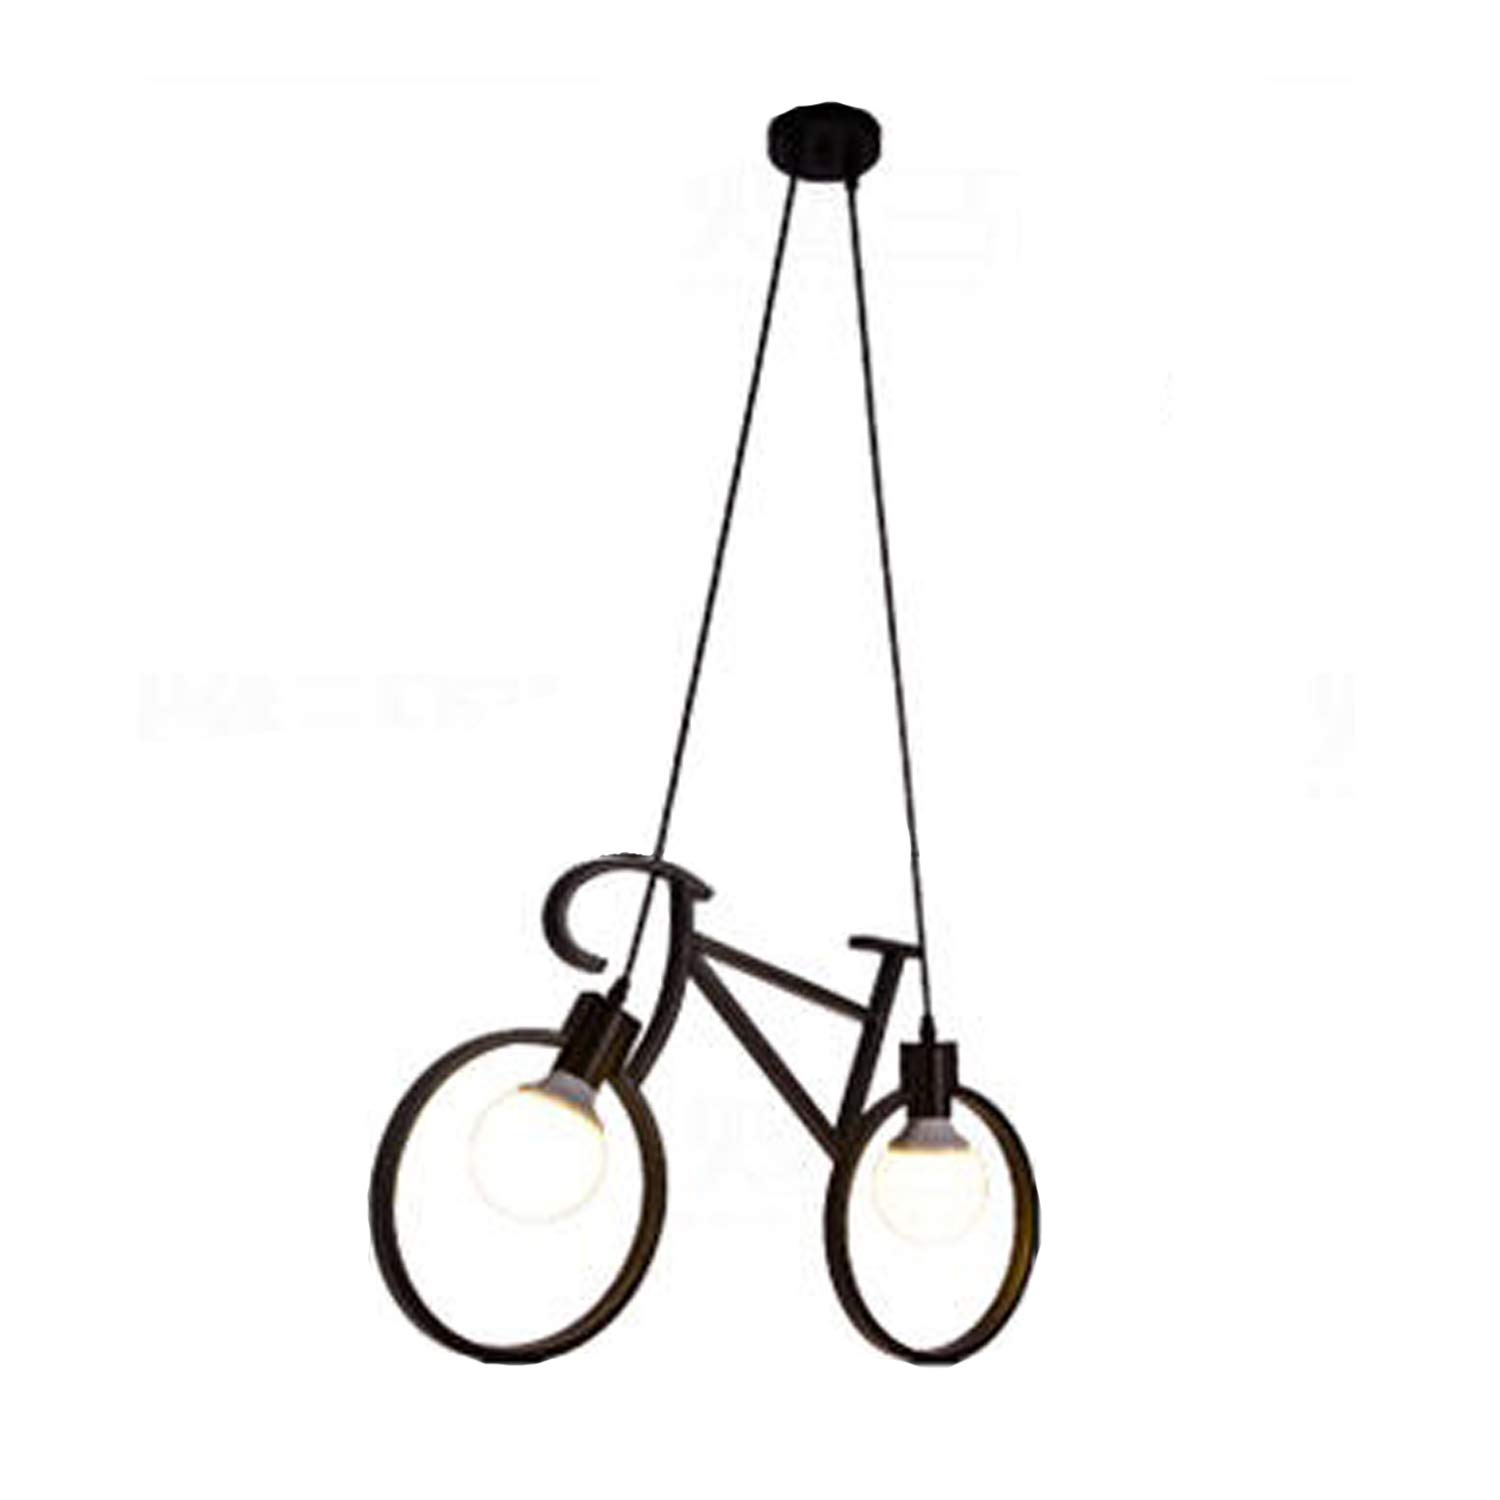 Injuicy Modern Bicycle Metal Iron Pendant Lights Shade E27 Edison Led Bike Ceiling Lamps Fixtures for Living Dining Children's Room Restaurant Clothing Store Cafe Shop Hallway Gift (Black)